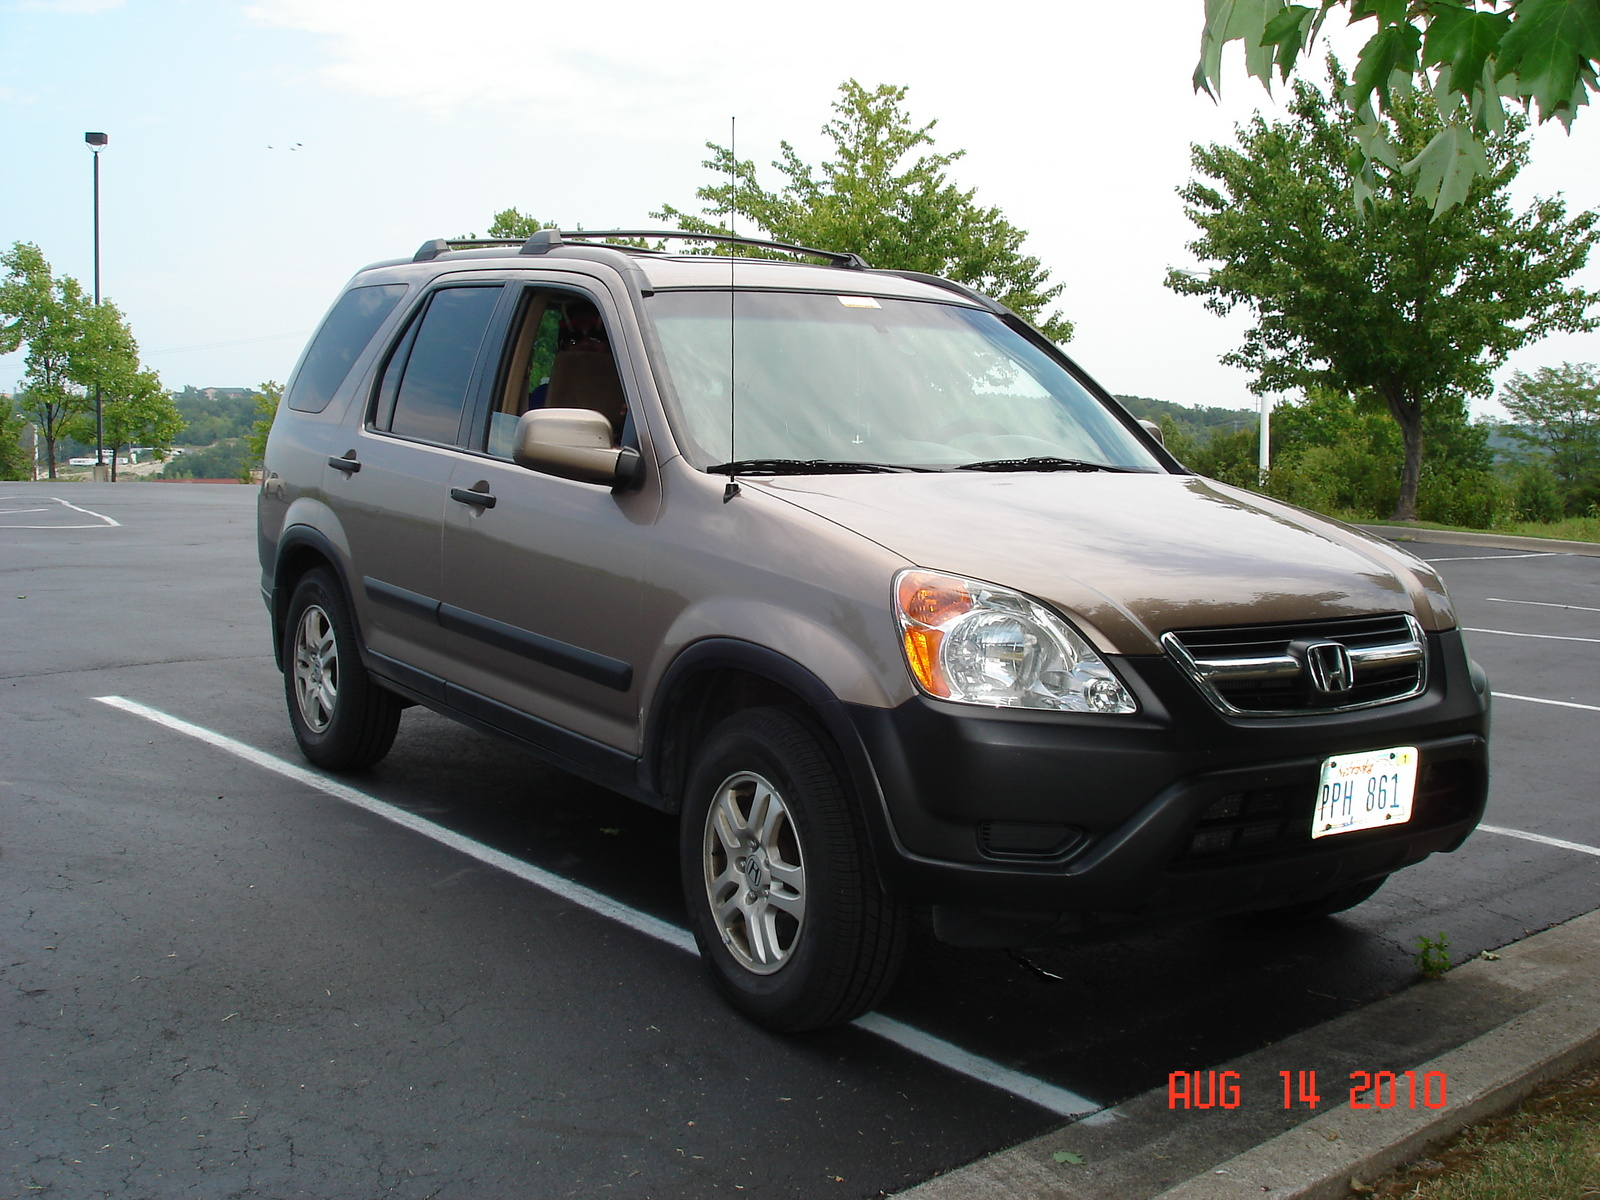 Honda CR-V 2.4 2003 photo - 6